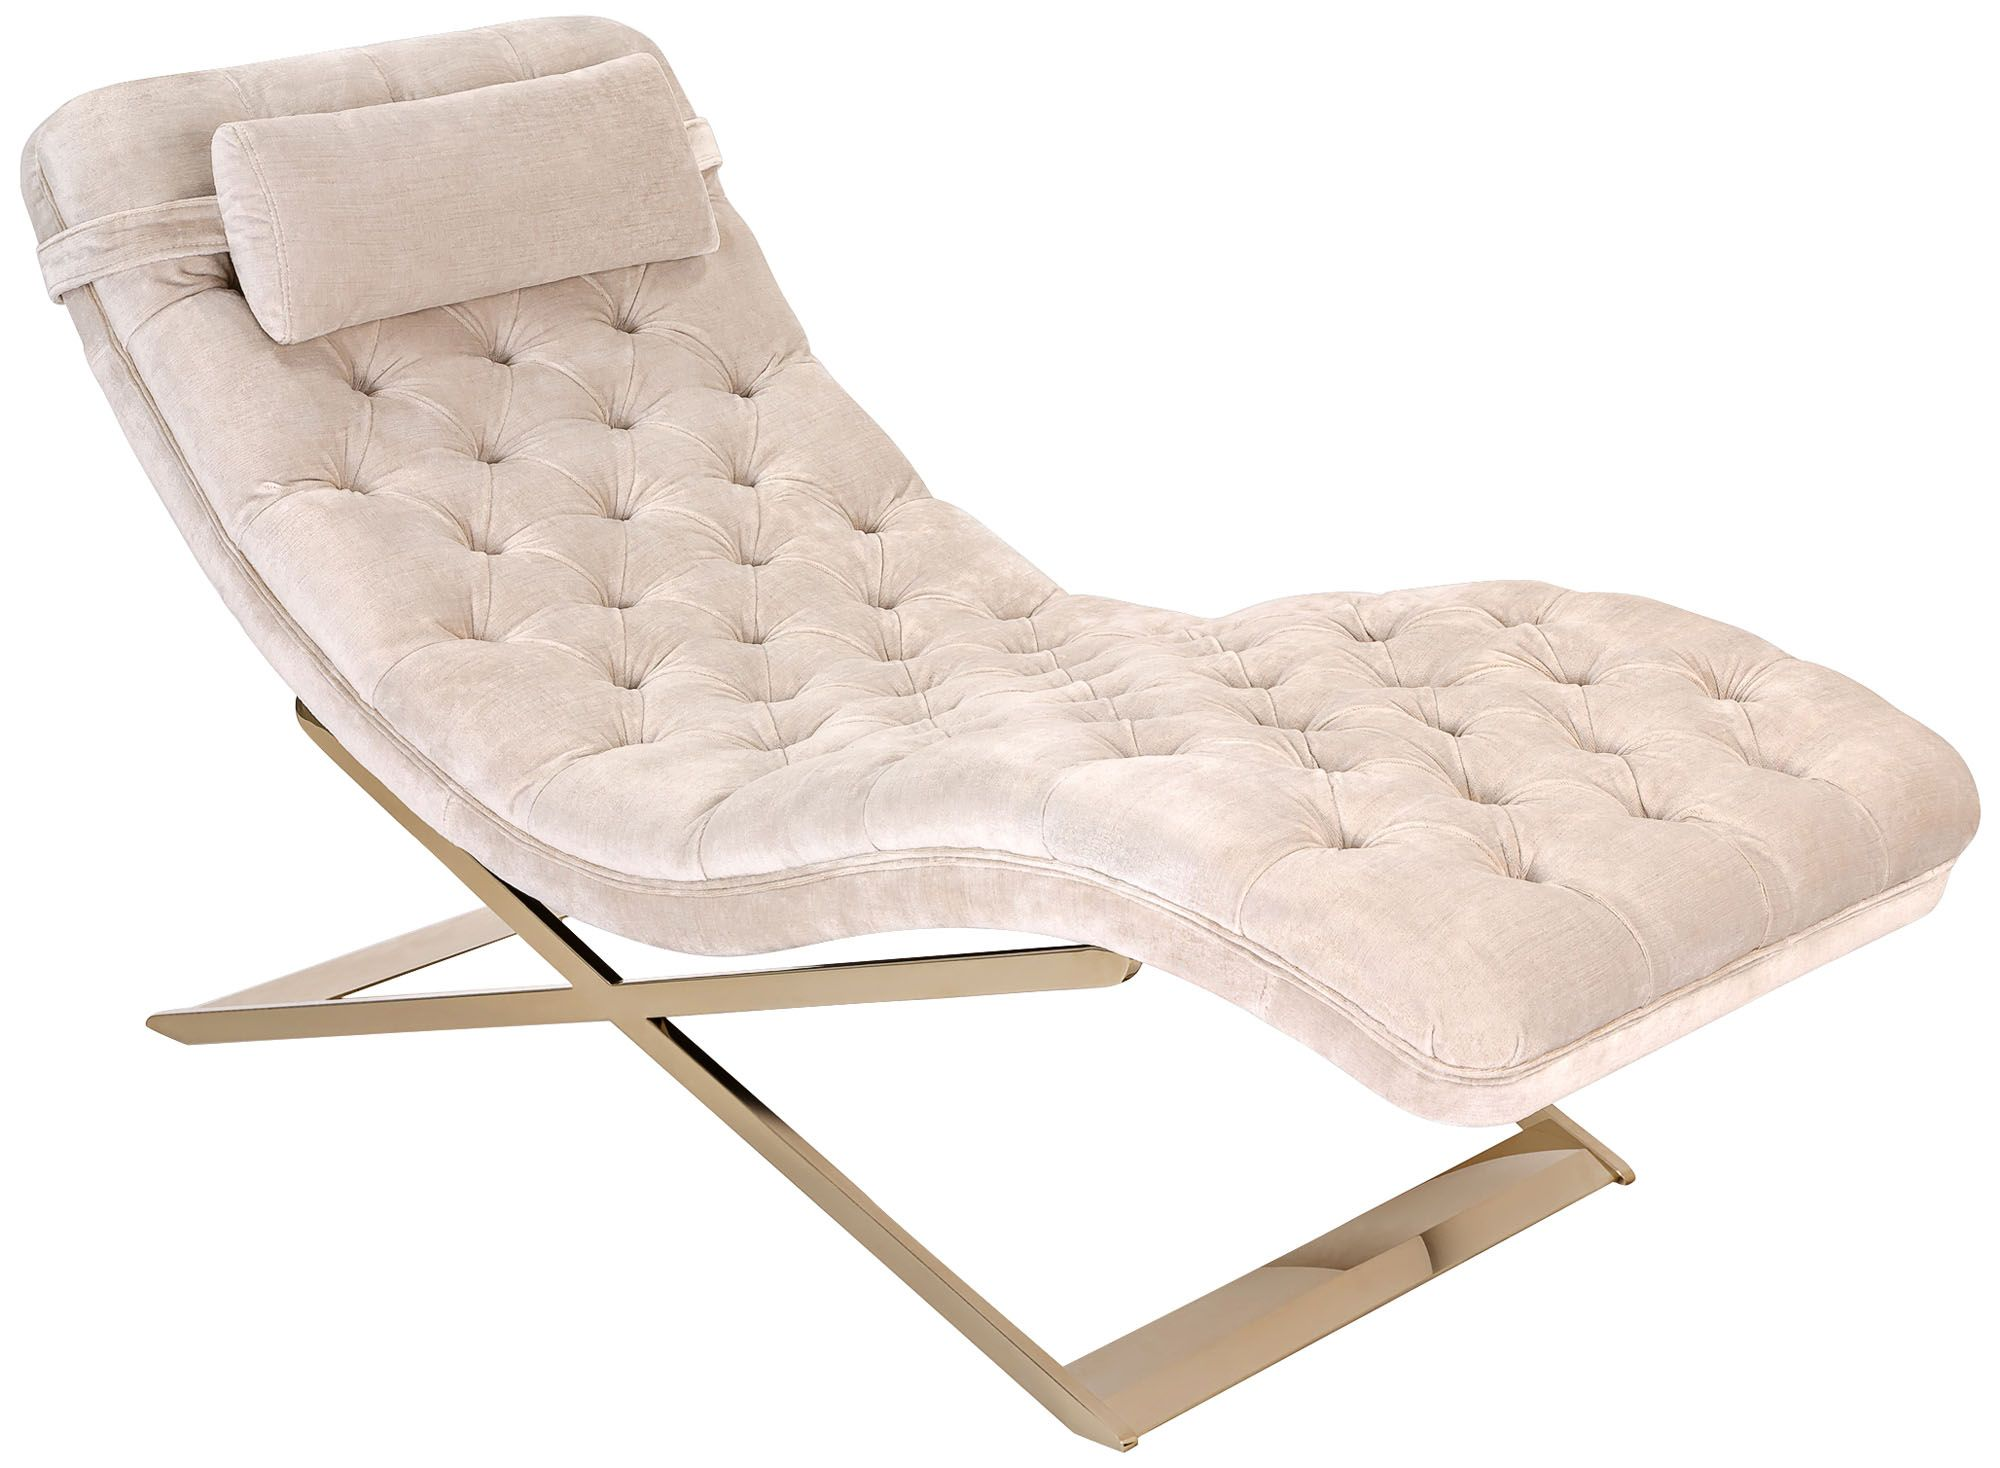 Nampa Champagne TuftedVelvet Indoor Chaise Lounge